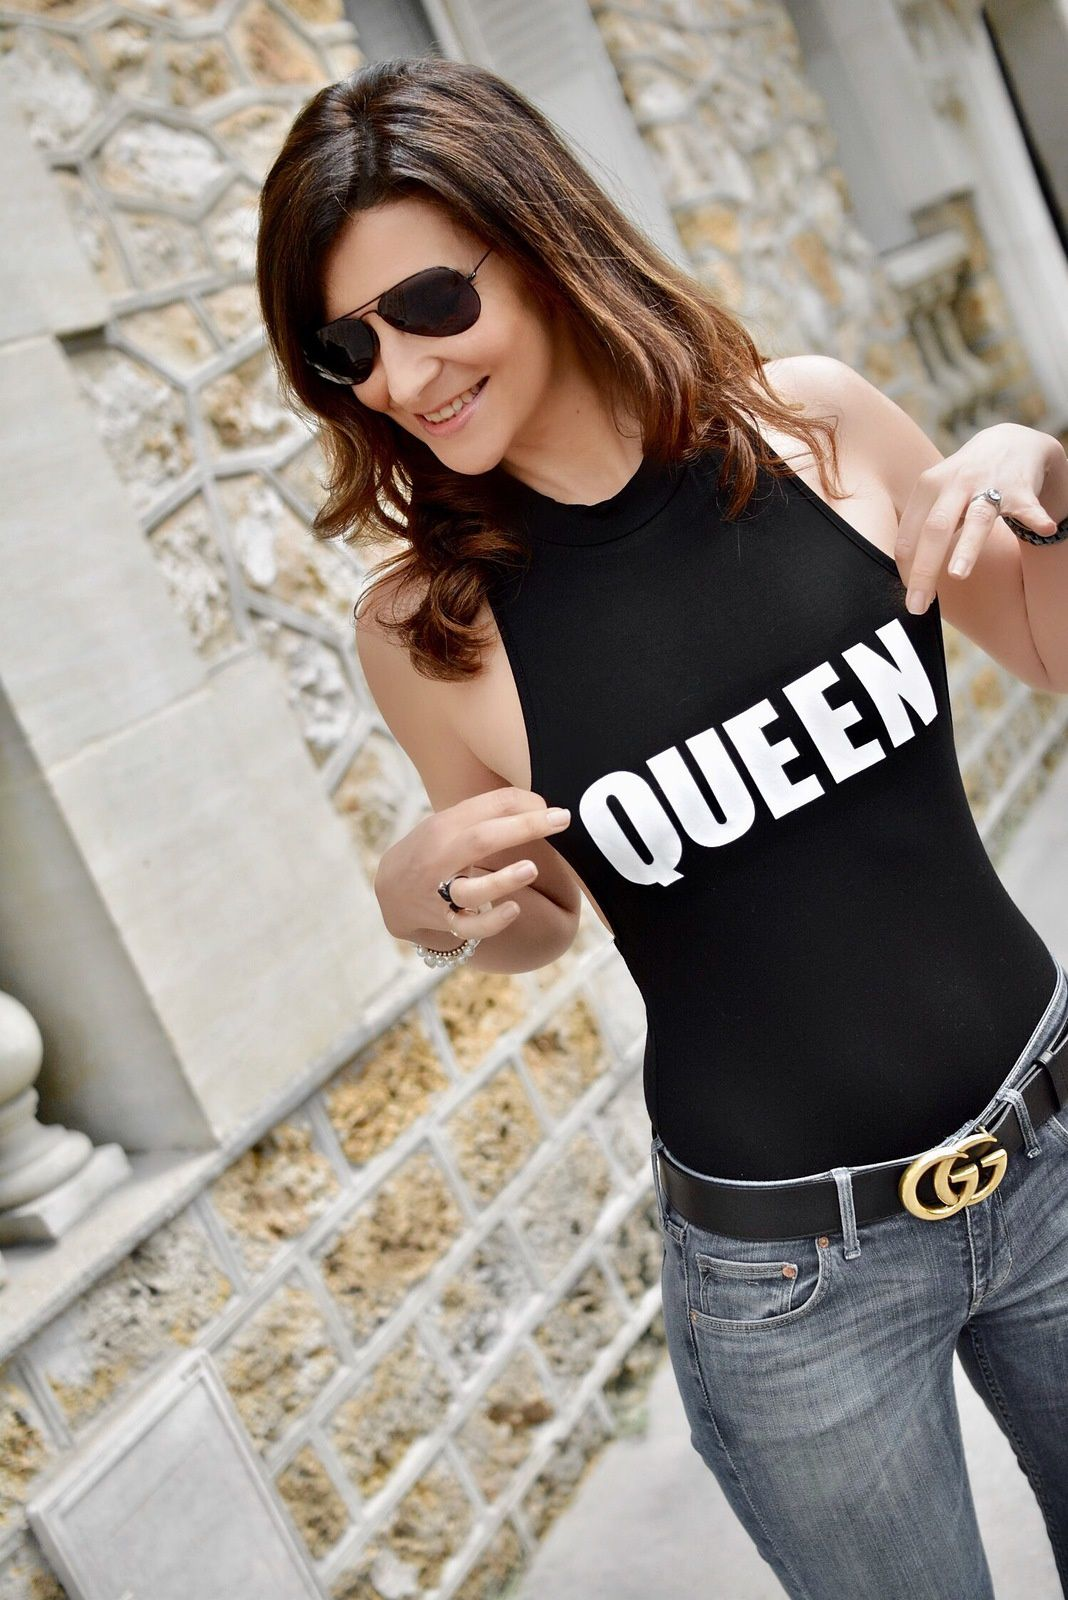 I am the queen !